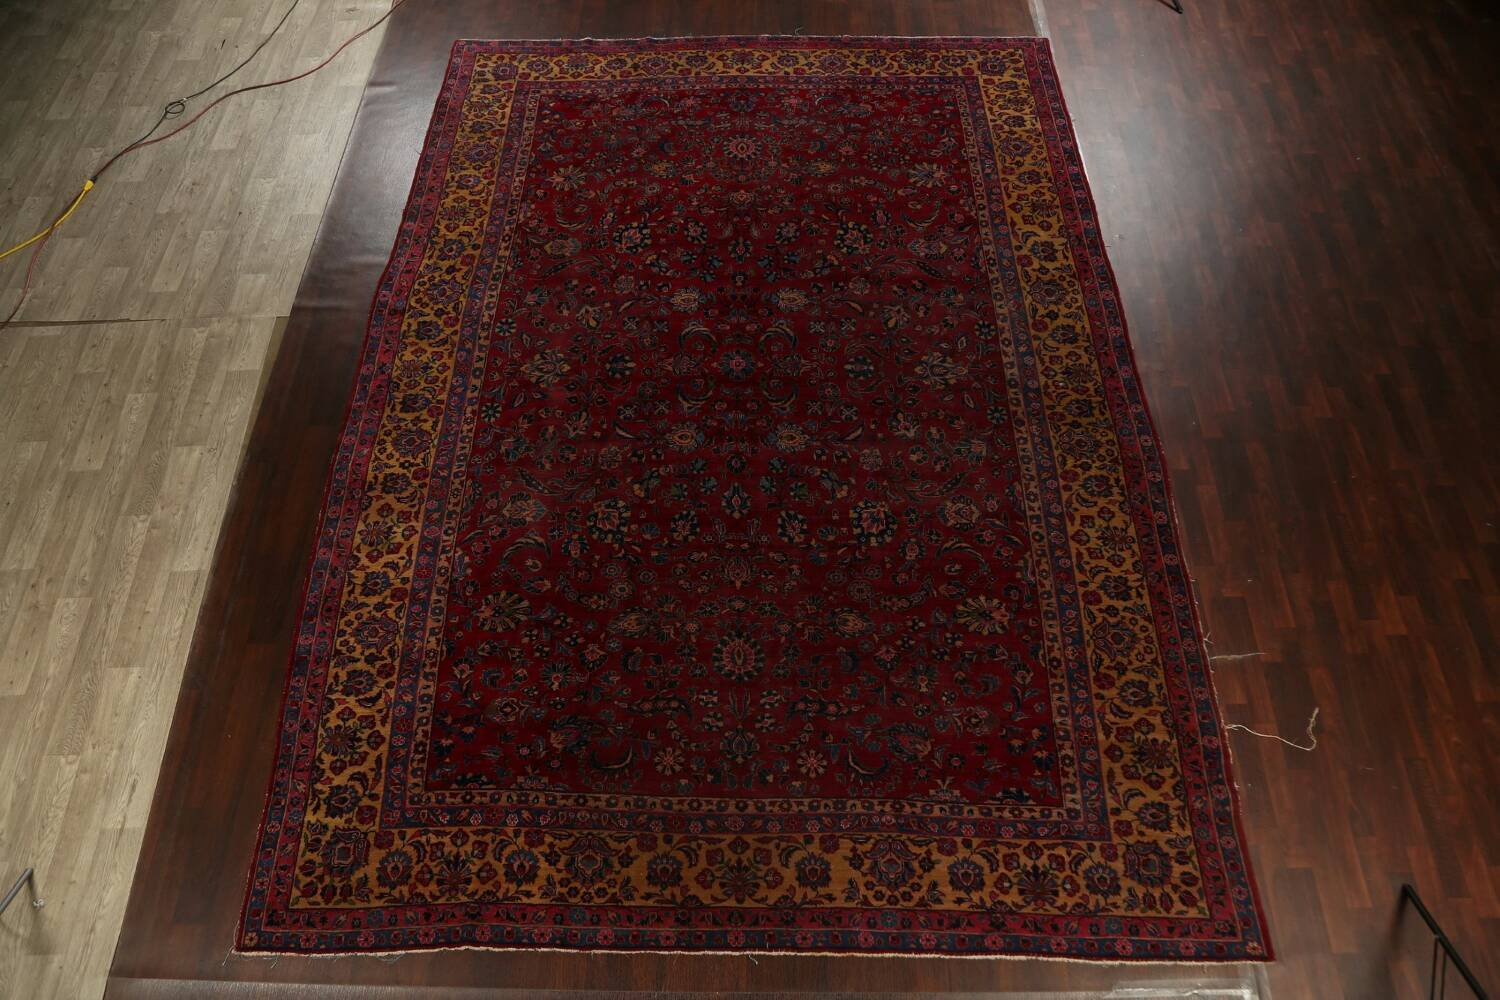 Pre-1900 Antique Vegetable Dye Sarouk Persian Area Rug 11x15 image 17